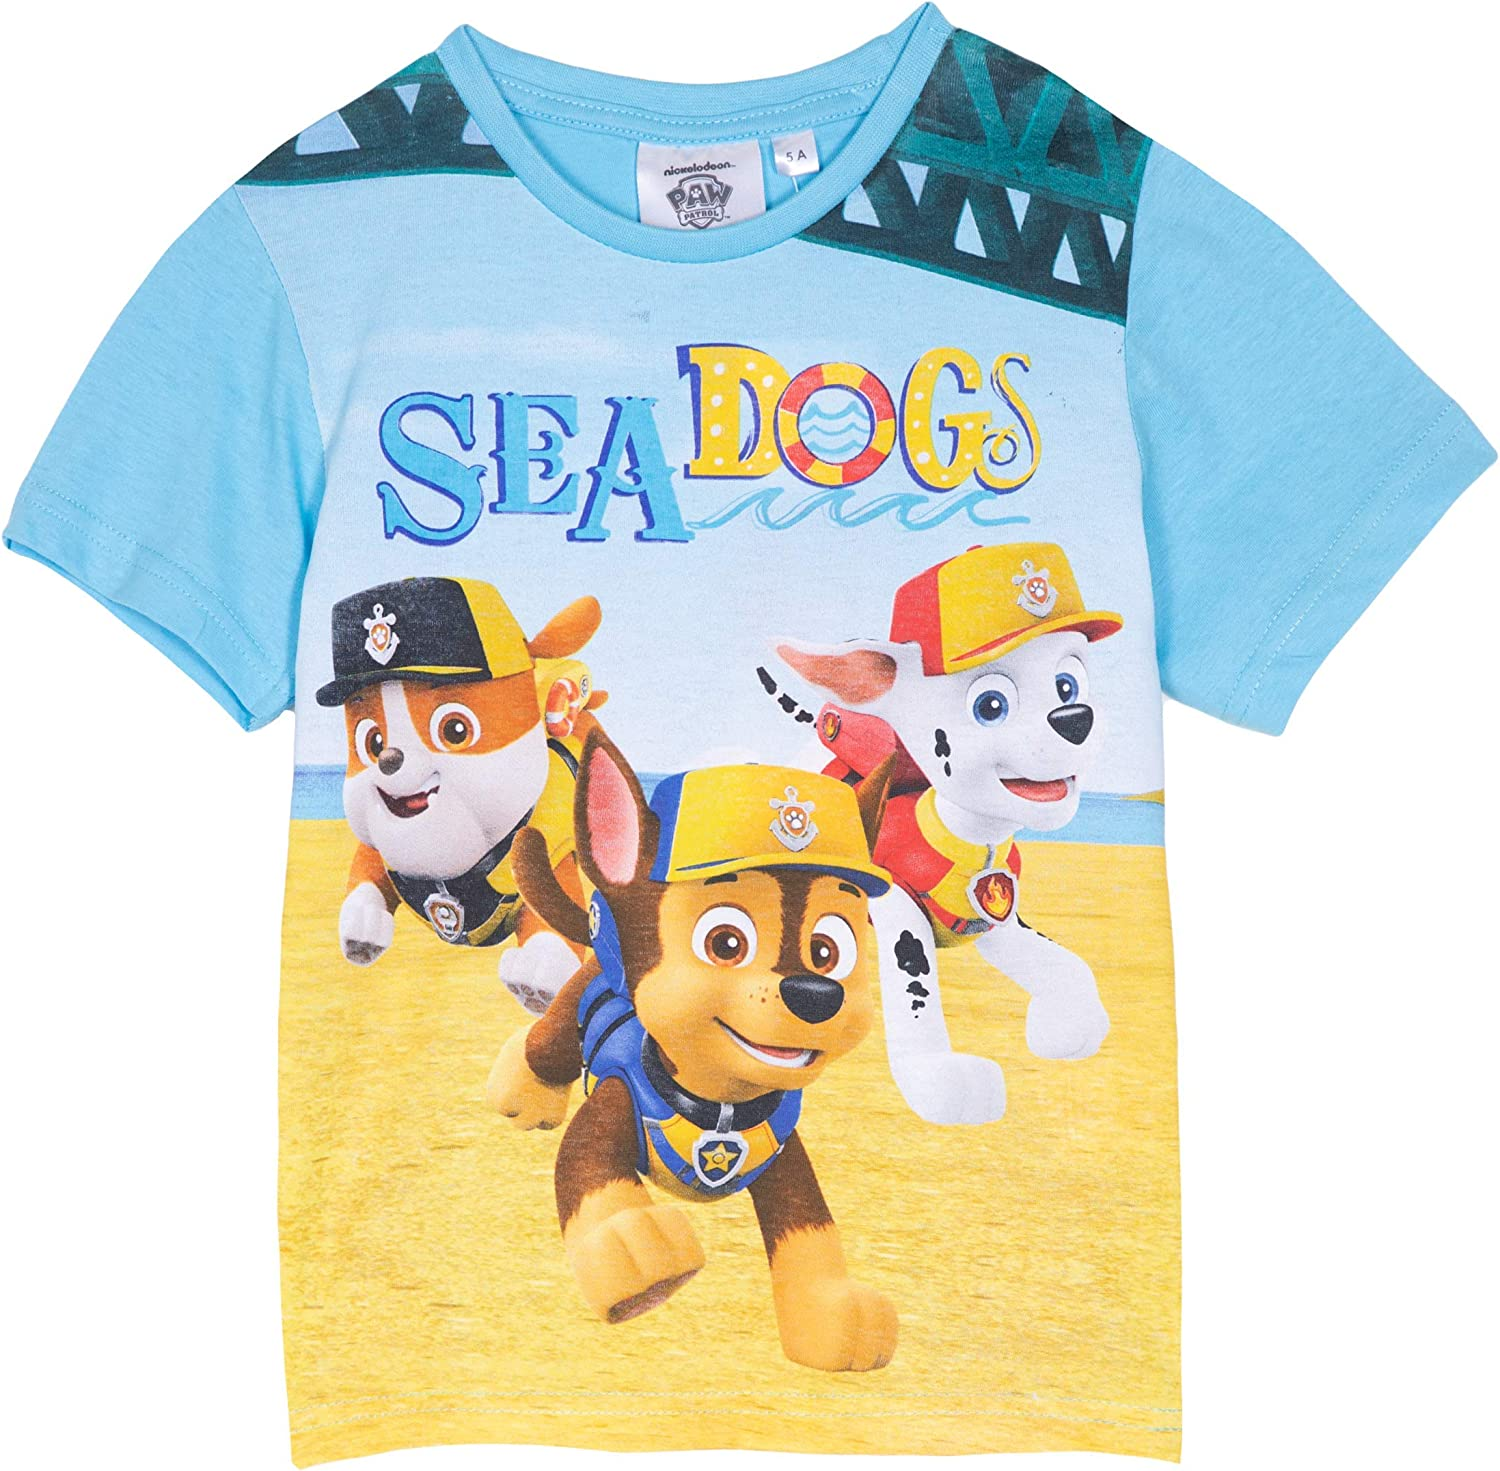 Paw Patrol Boys T-Shirt Short Sleeve Tops 100/% Cotton Stripes Pattern or Sea Patrol with Marshall Chase Rubble Characters Picture 2-6 Years